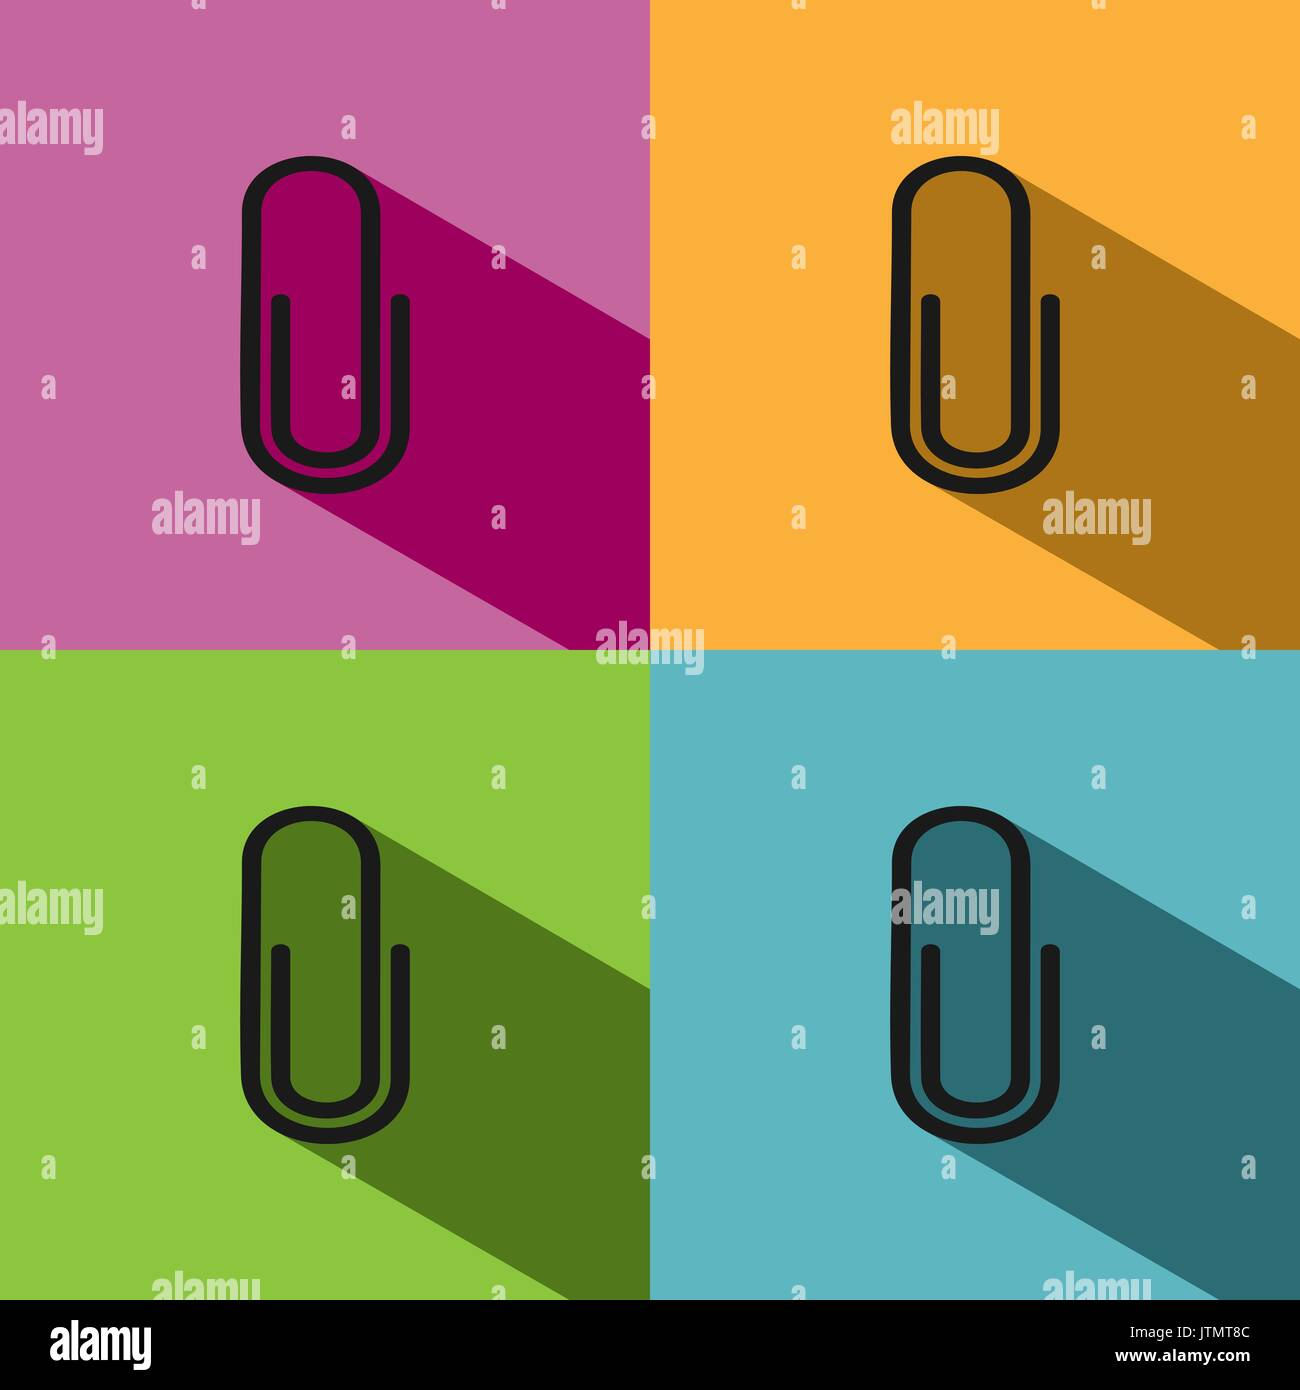 Clip icon with shade on colored backgrounds - Stock Vector